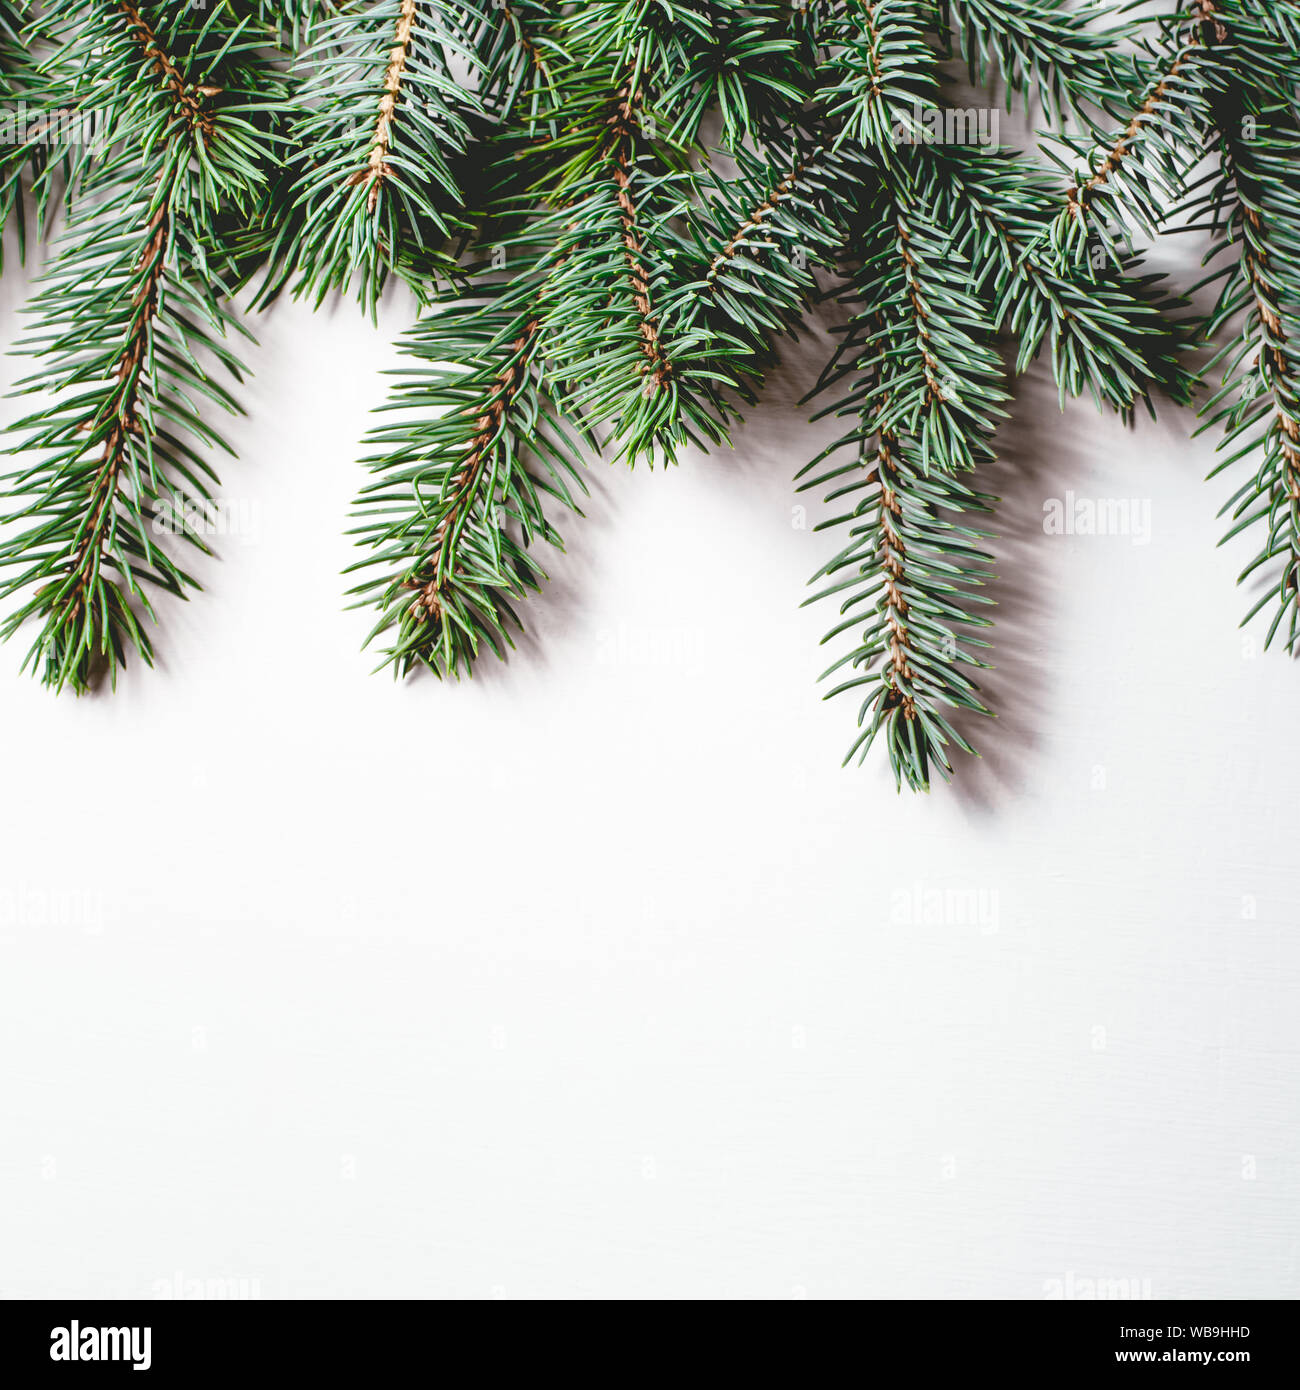 fir branches on white background christmas wallpaper WB9HHD